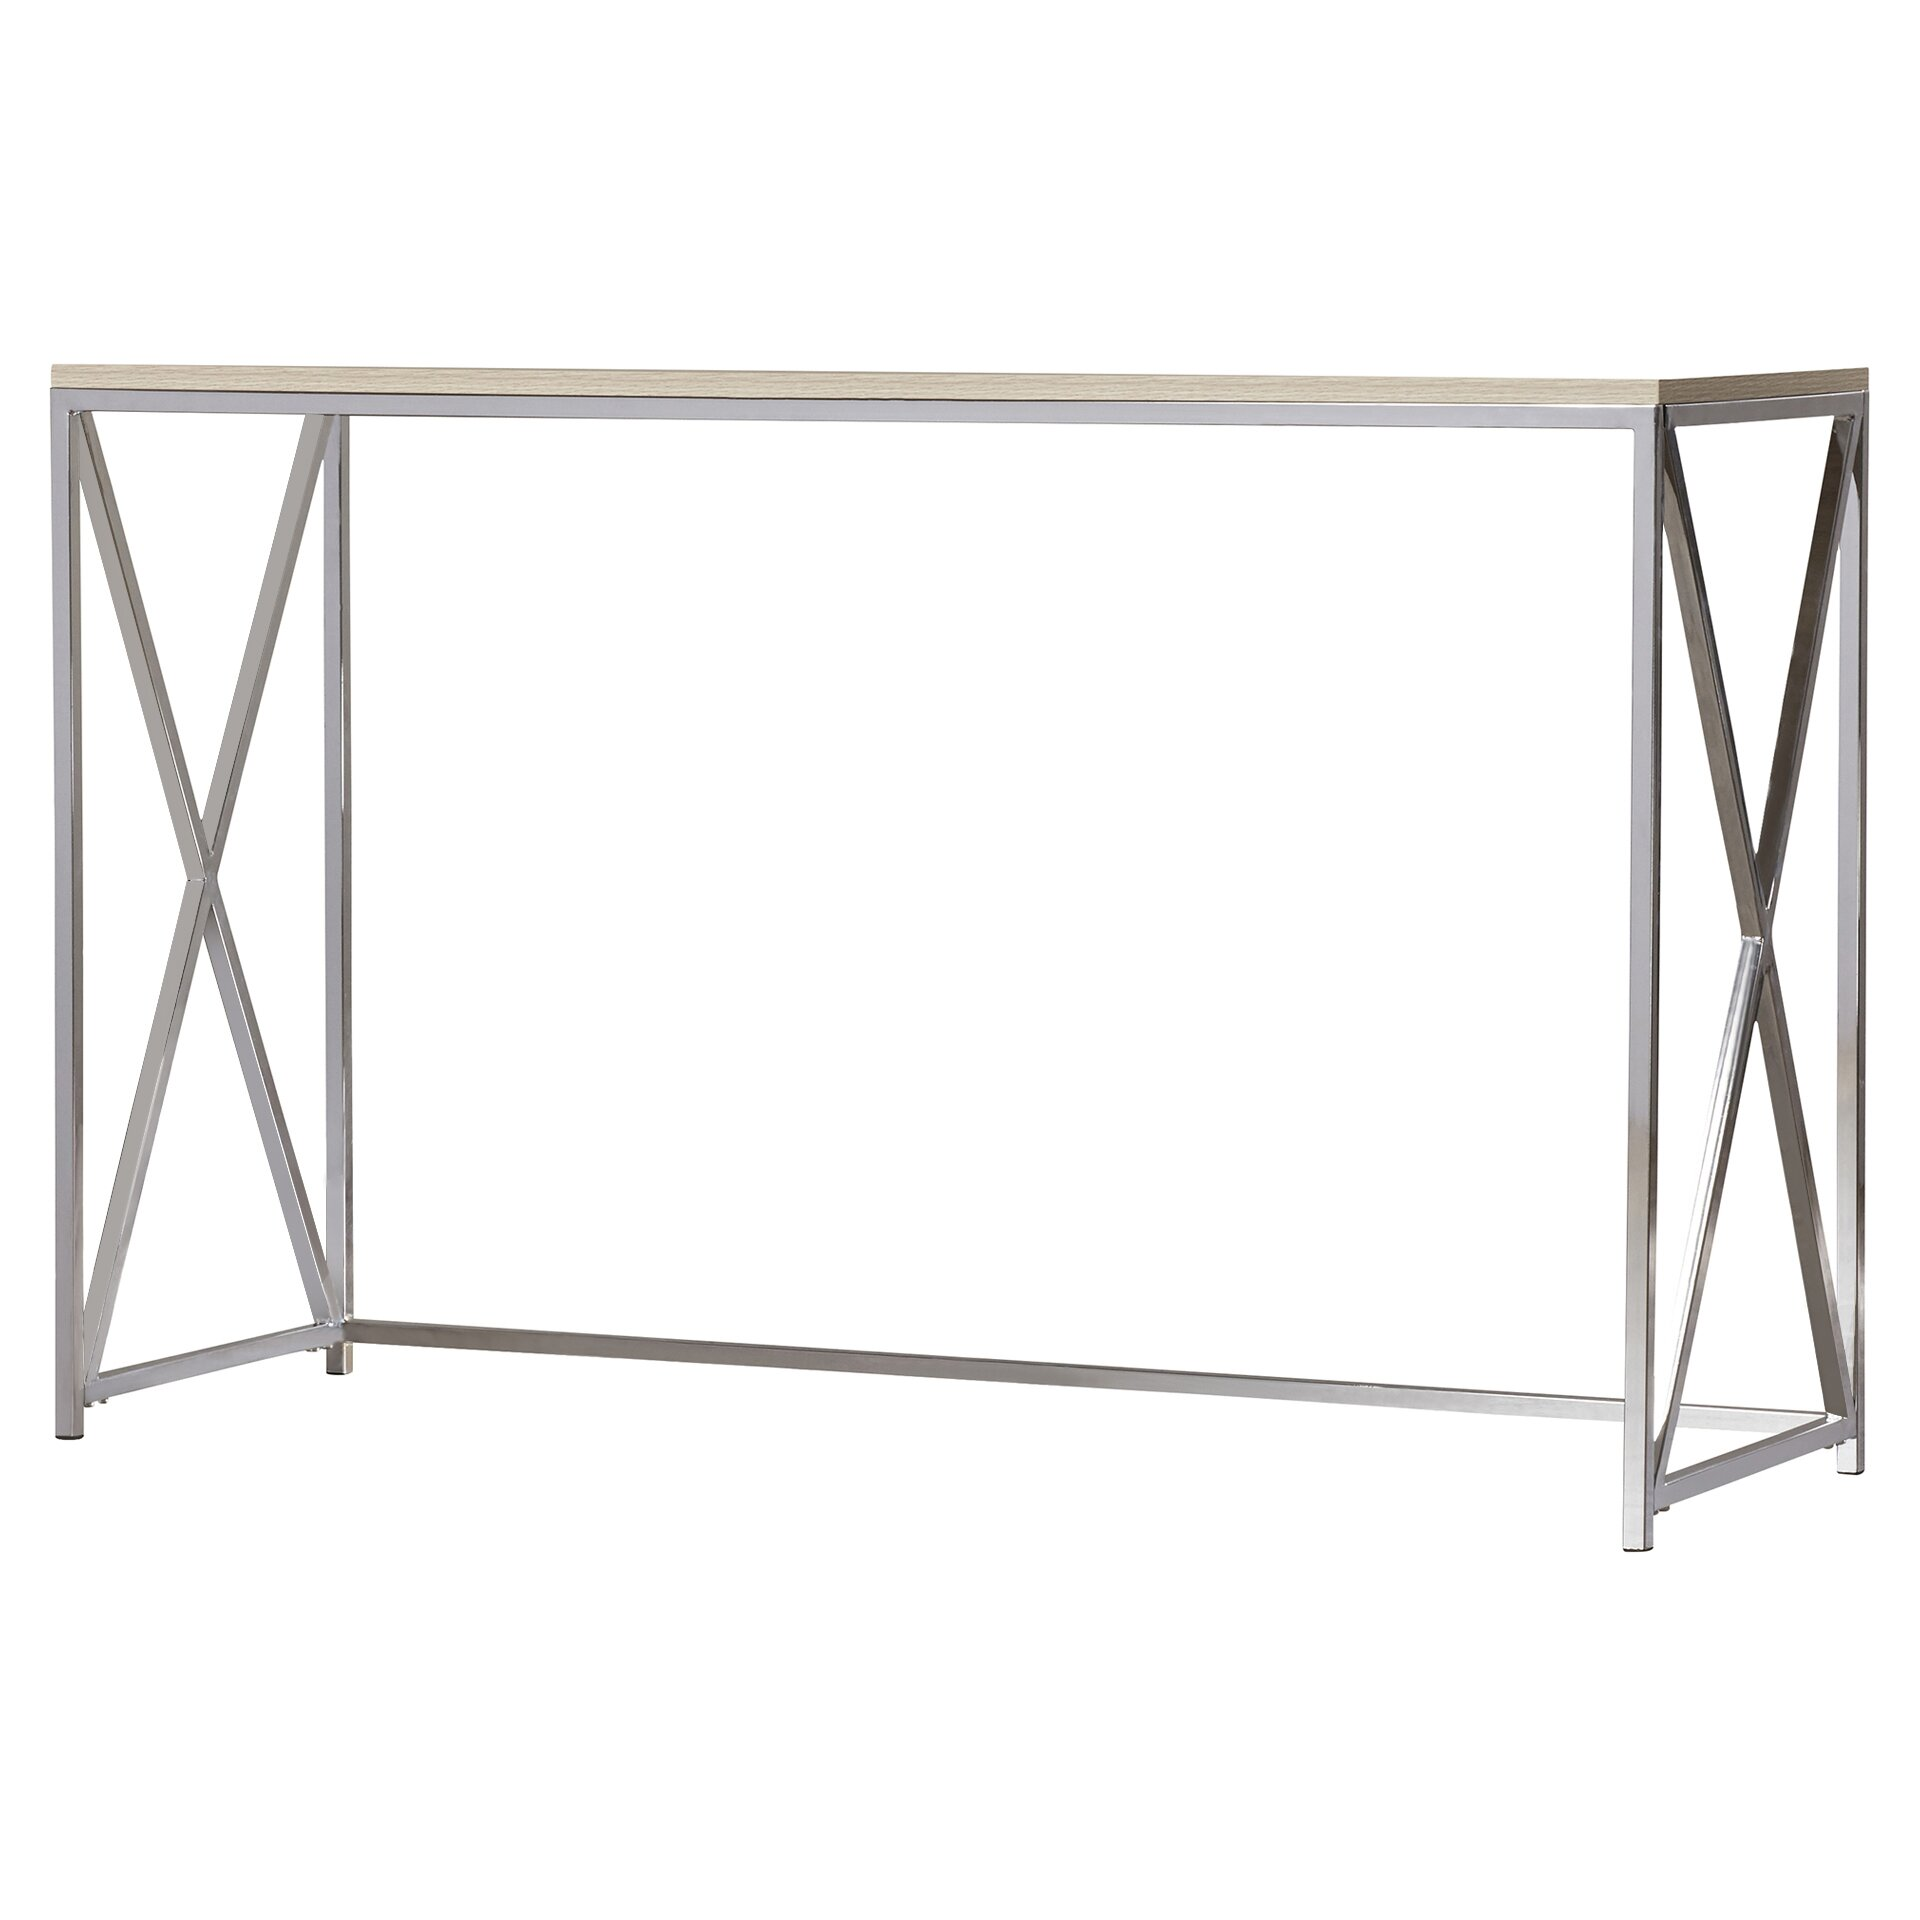 Sterk Furniture  pany Cityscape Console Table WLWP1031 together with Mercer41 Lyda Caroline Sofa MRCR2528 moreover Industrial Console Table CN1107 QMGD1153 likewise Brayden Studio Belaire Console Table BRSD2306 in addition Alcott Hill C2 AE Loveseat Cushion ALCT8107. on queen sofa beds for sale